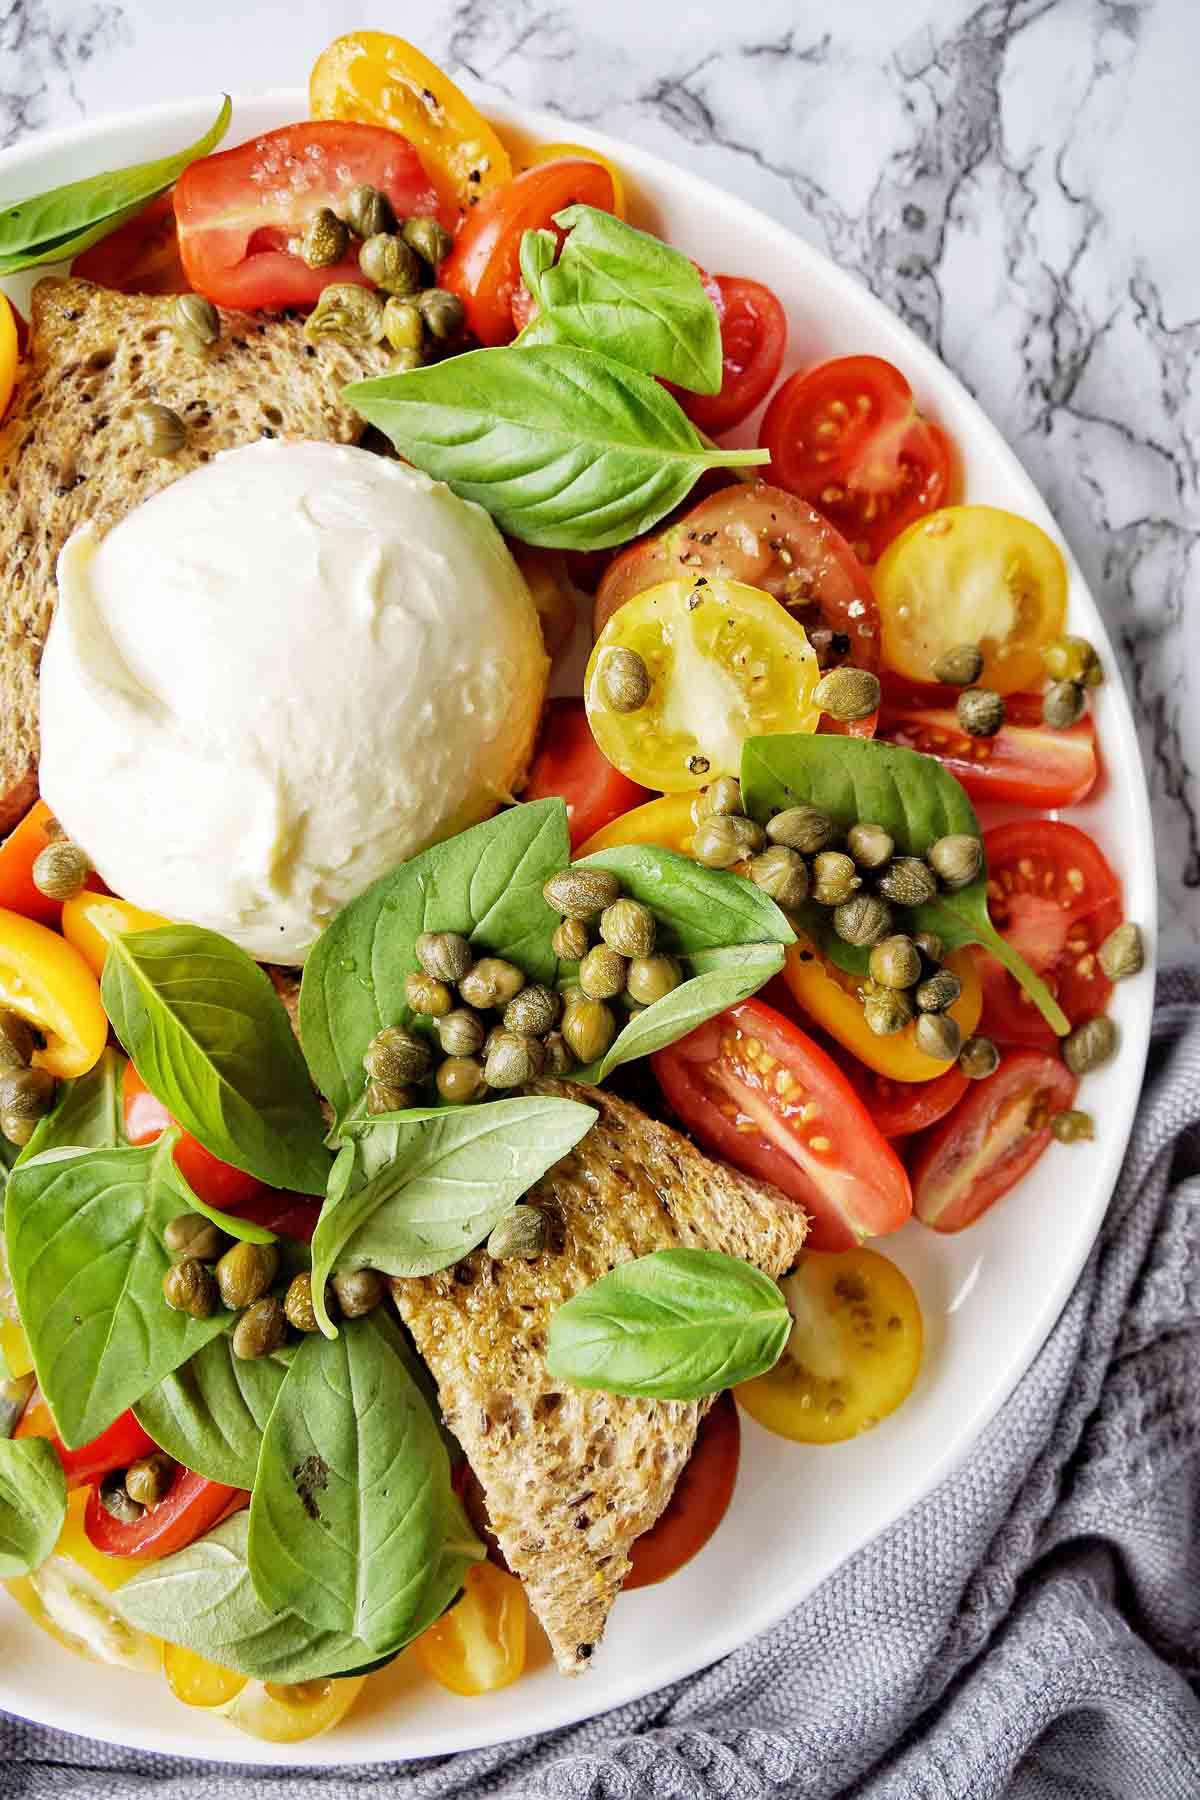 Burrata Salad with basil and capers on a white plate